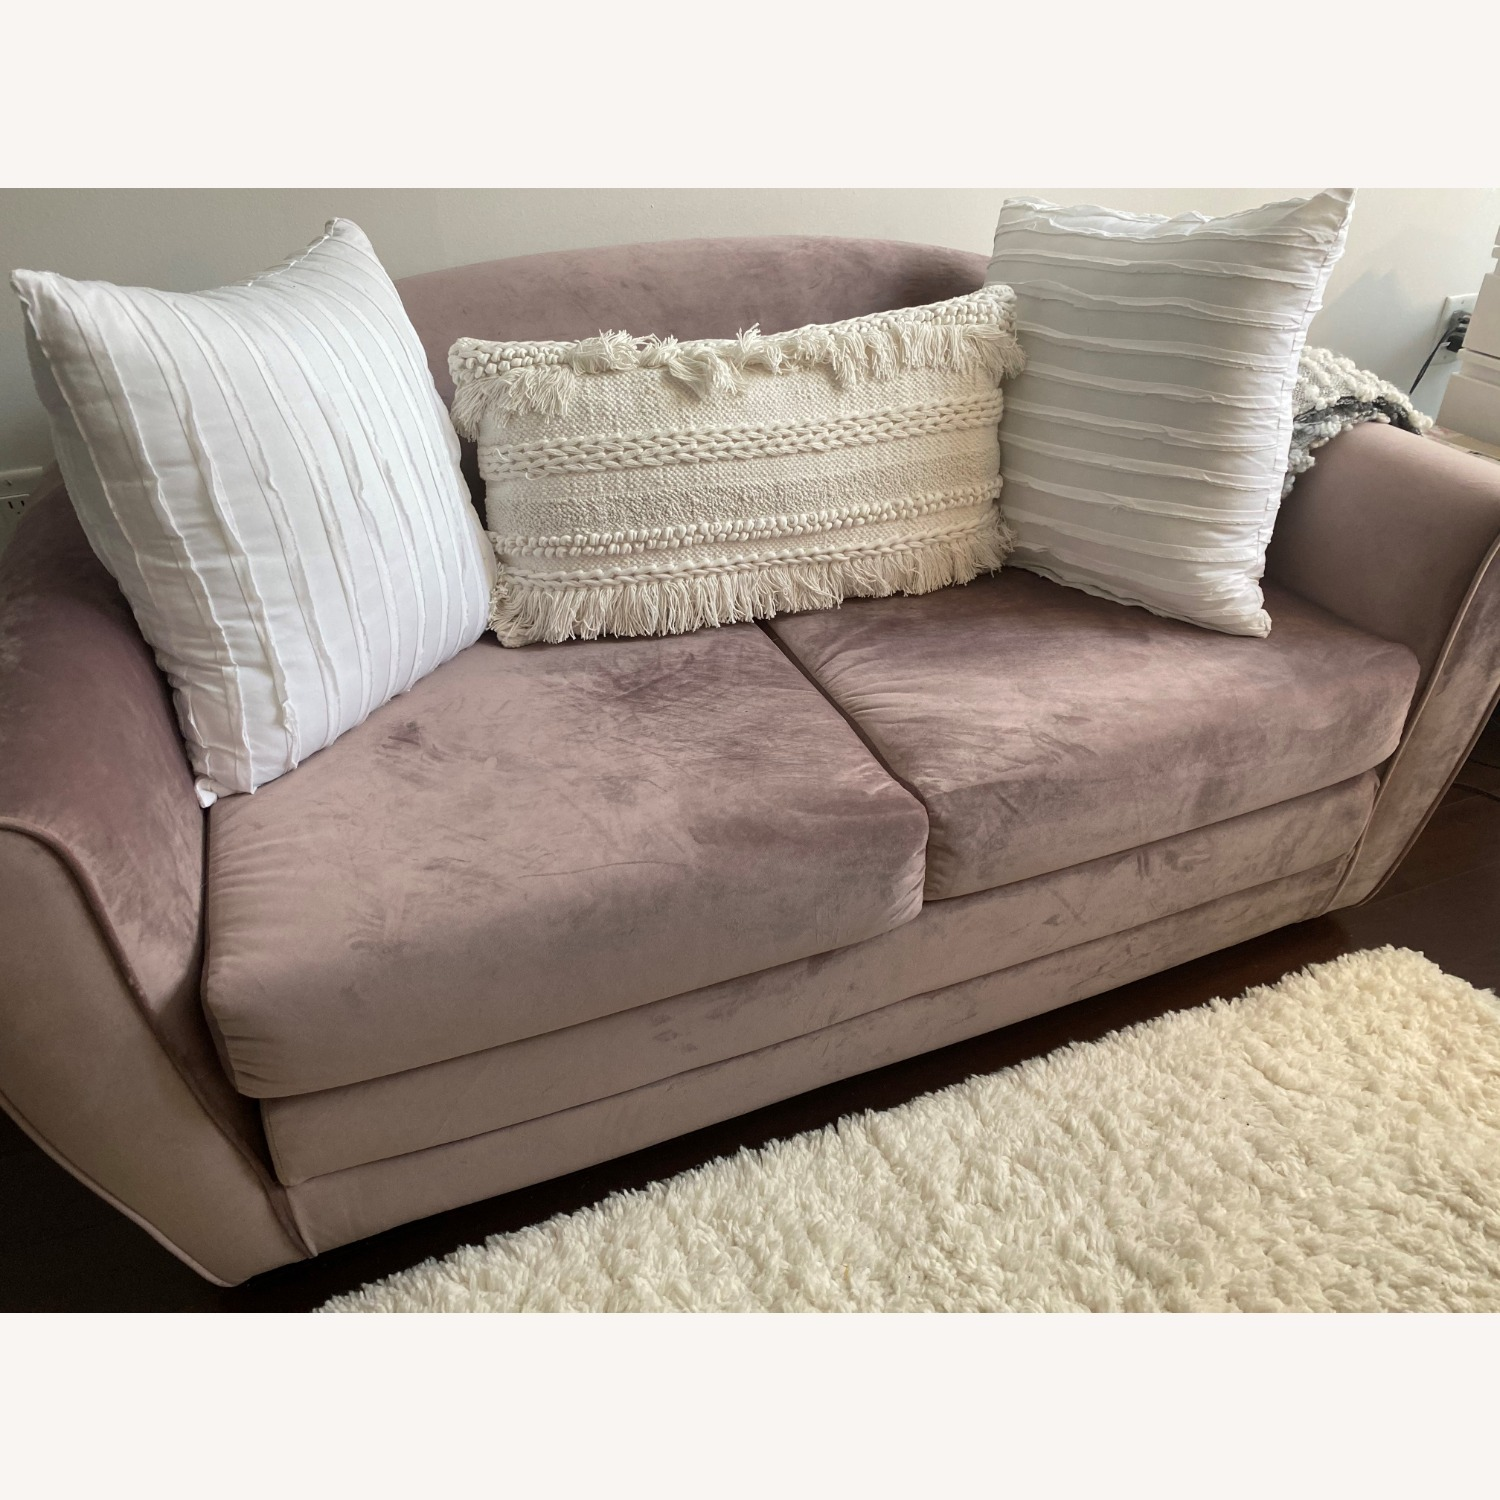 Urban Outfitters Little Pink Sleeper Sofa - image-1